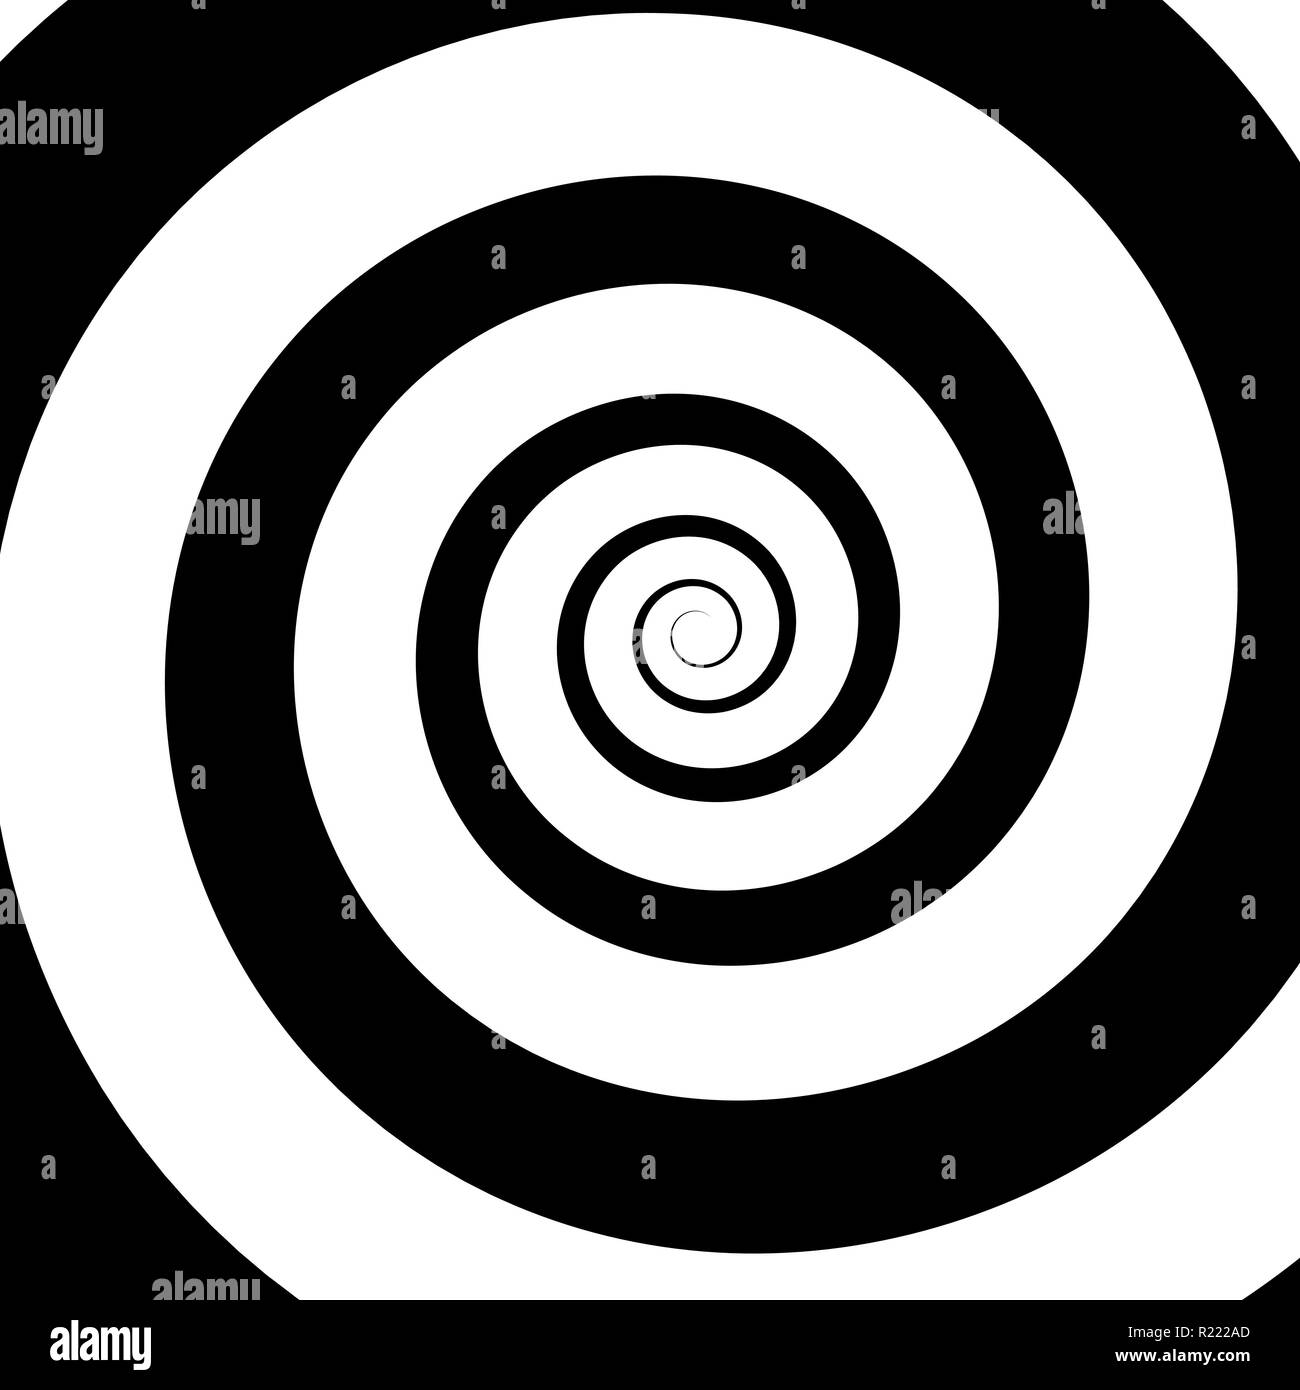 Idea Hypnosis spiral domination